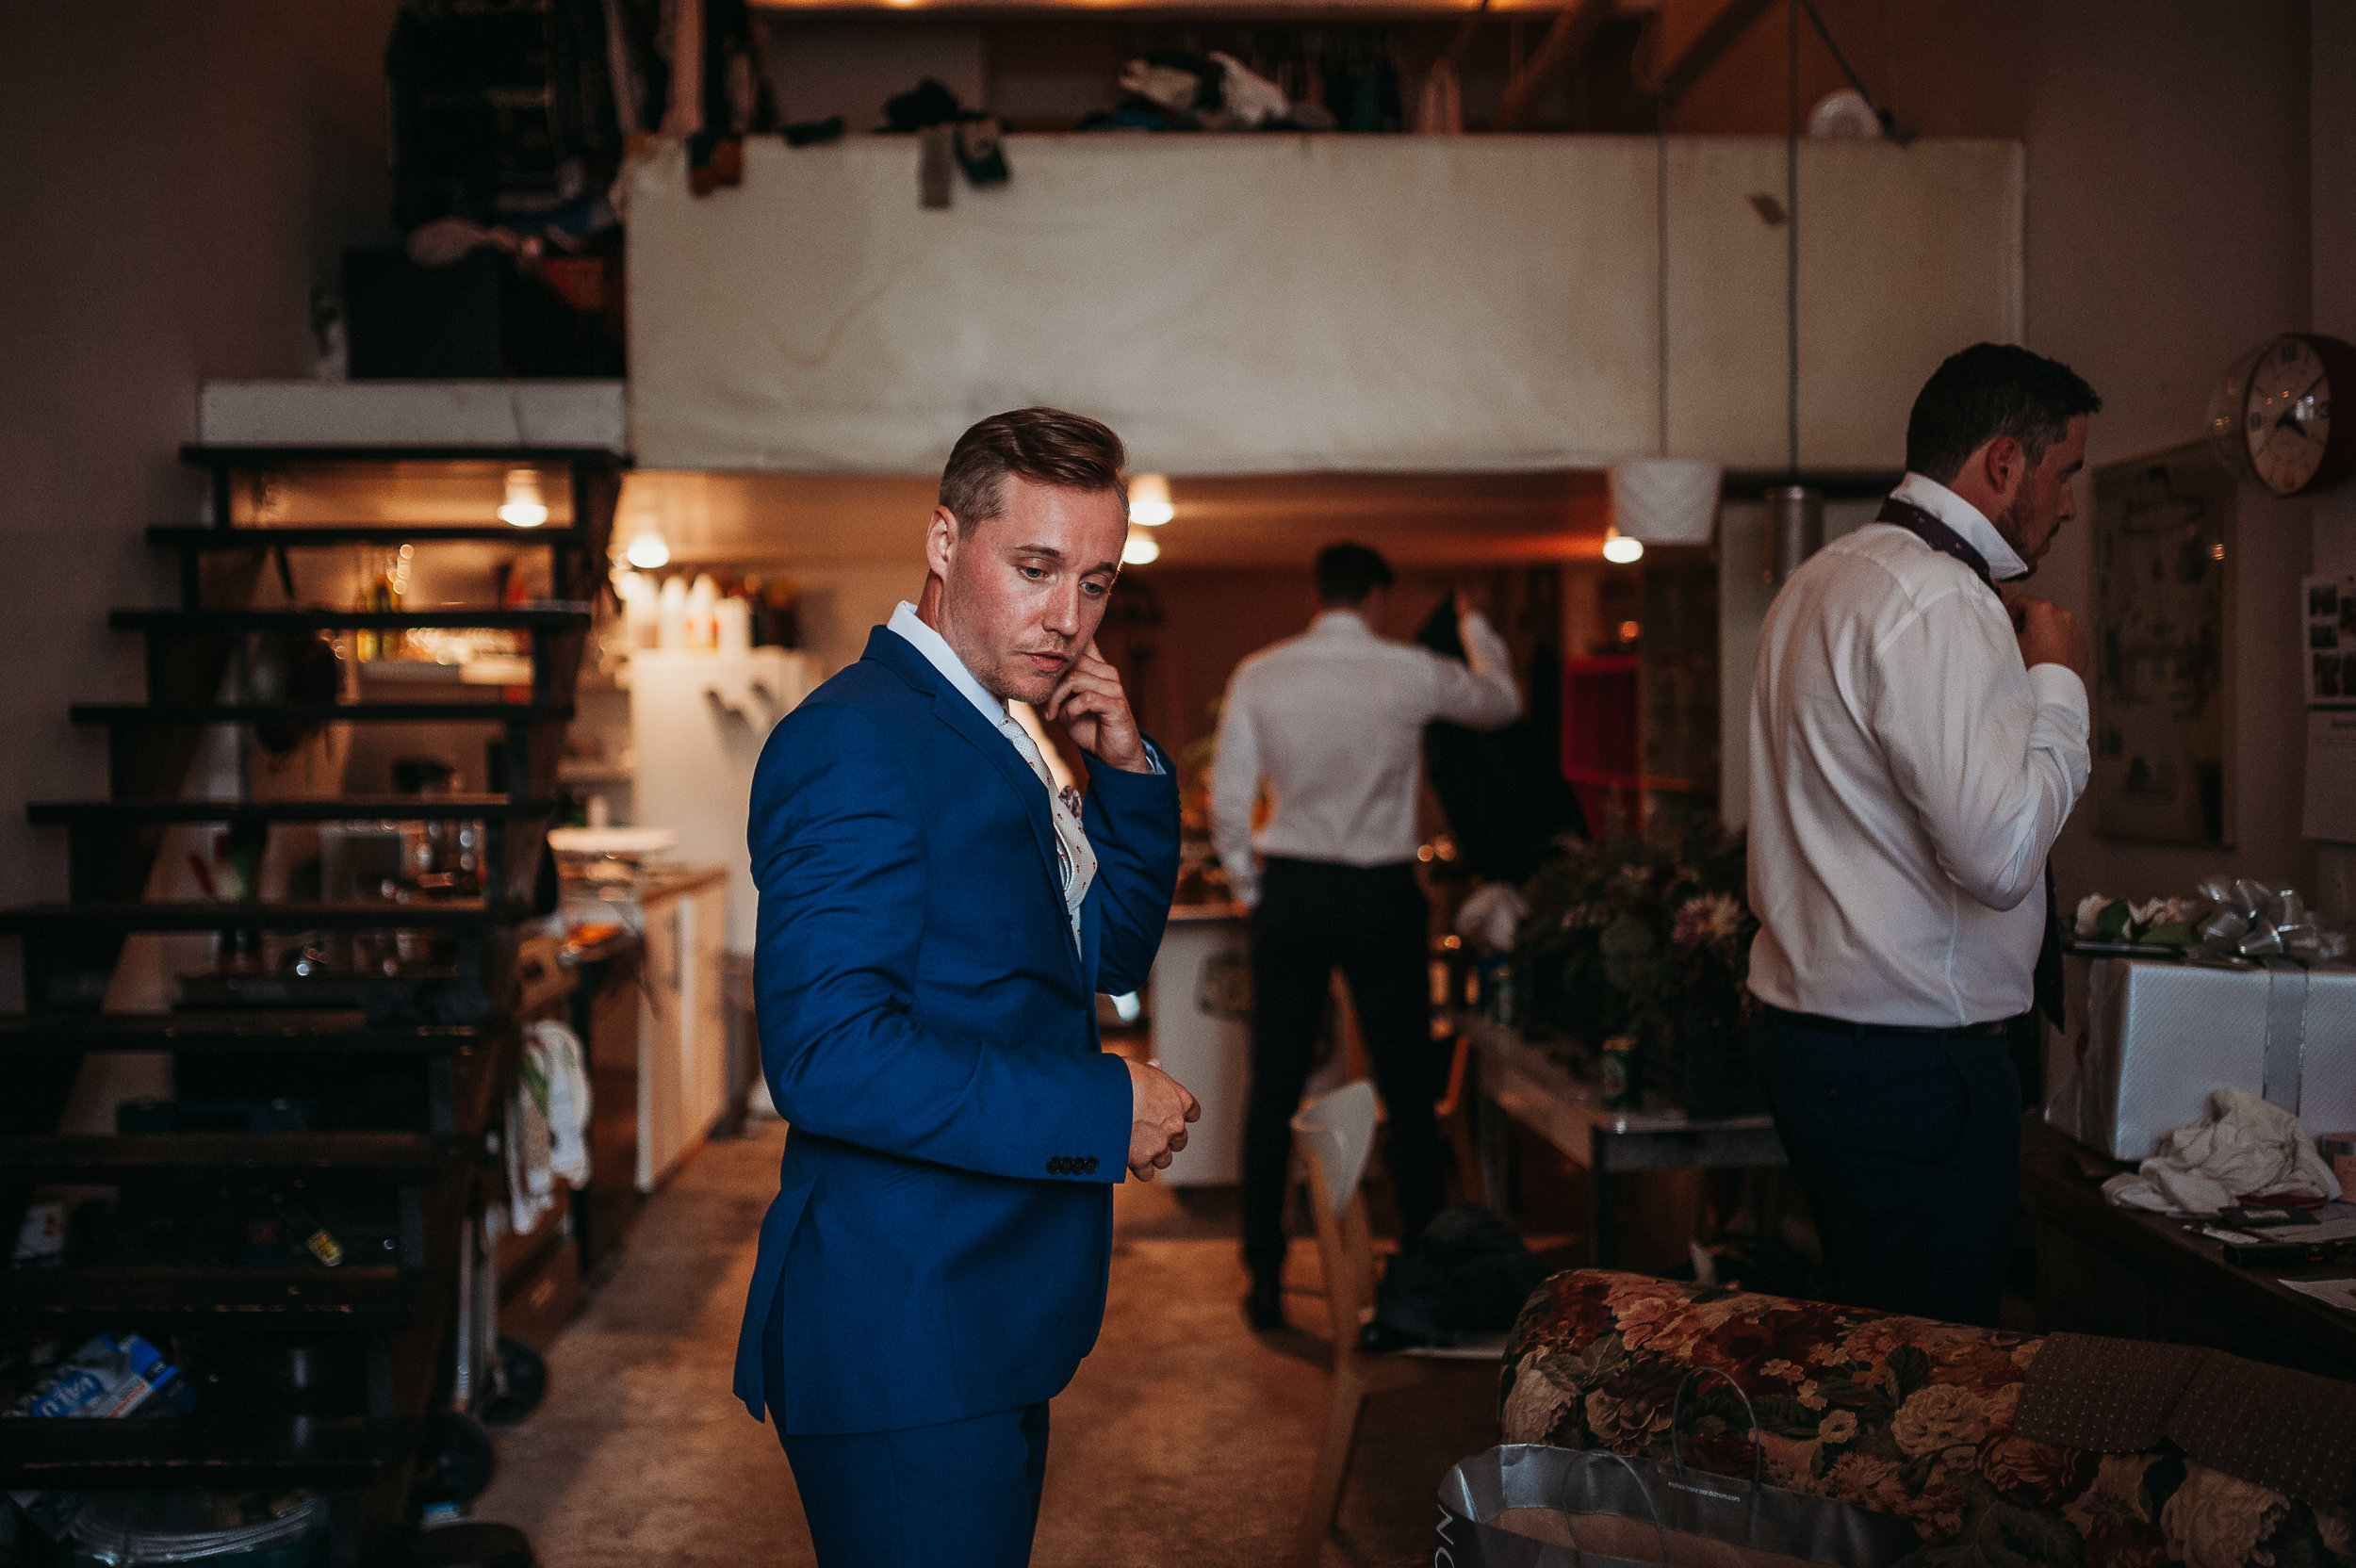 groom-getting-ready-pictures-groom-toronto-rustic-boho-airship37-wedding-by-willow-birch-photo-toronto-documentary-wedding-photographers.jpg